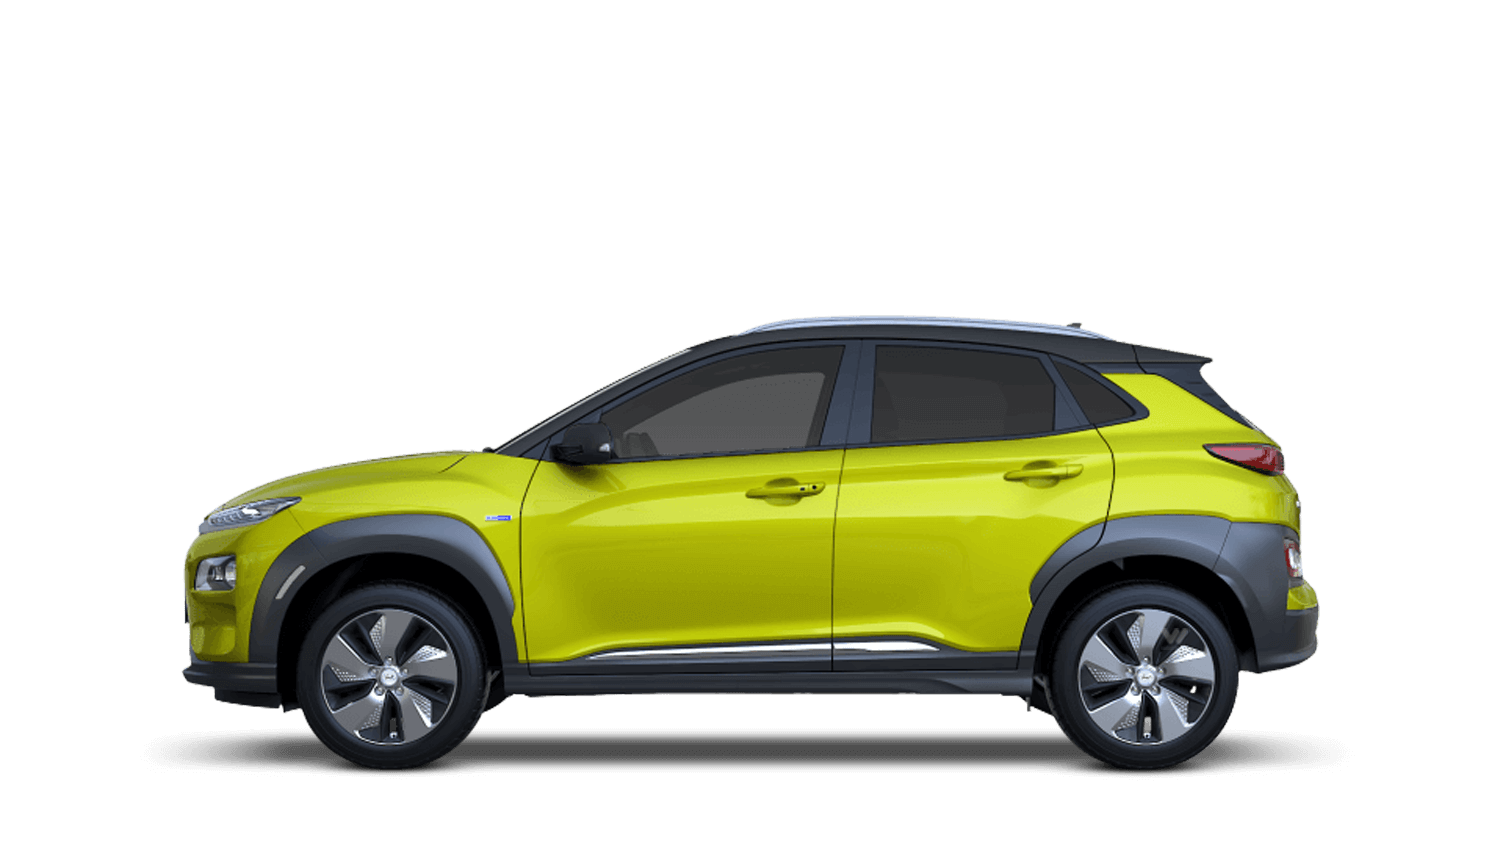 Acid Yellow Hyundai KONA Electric